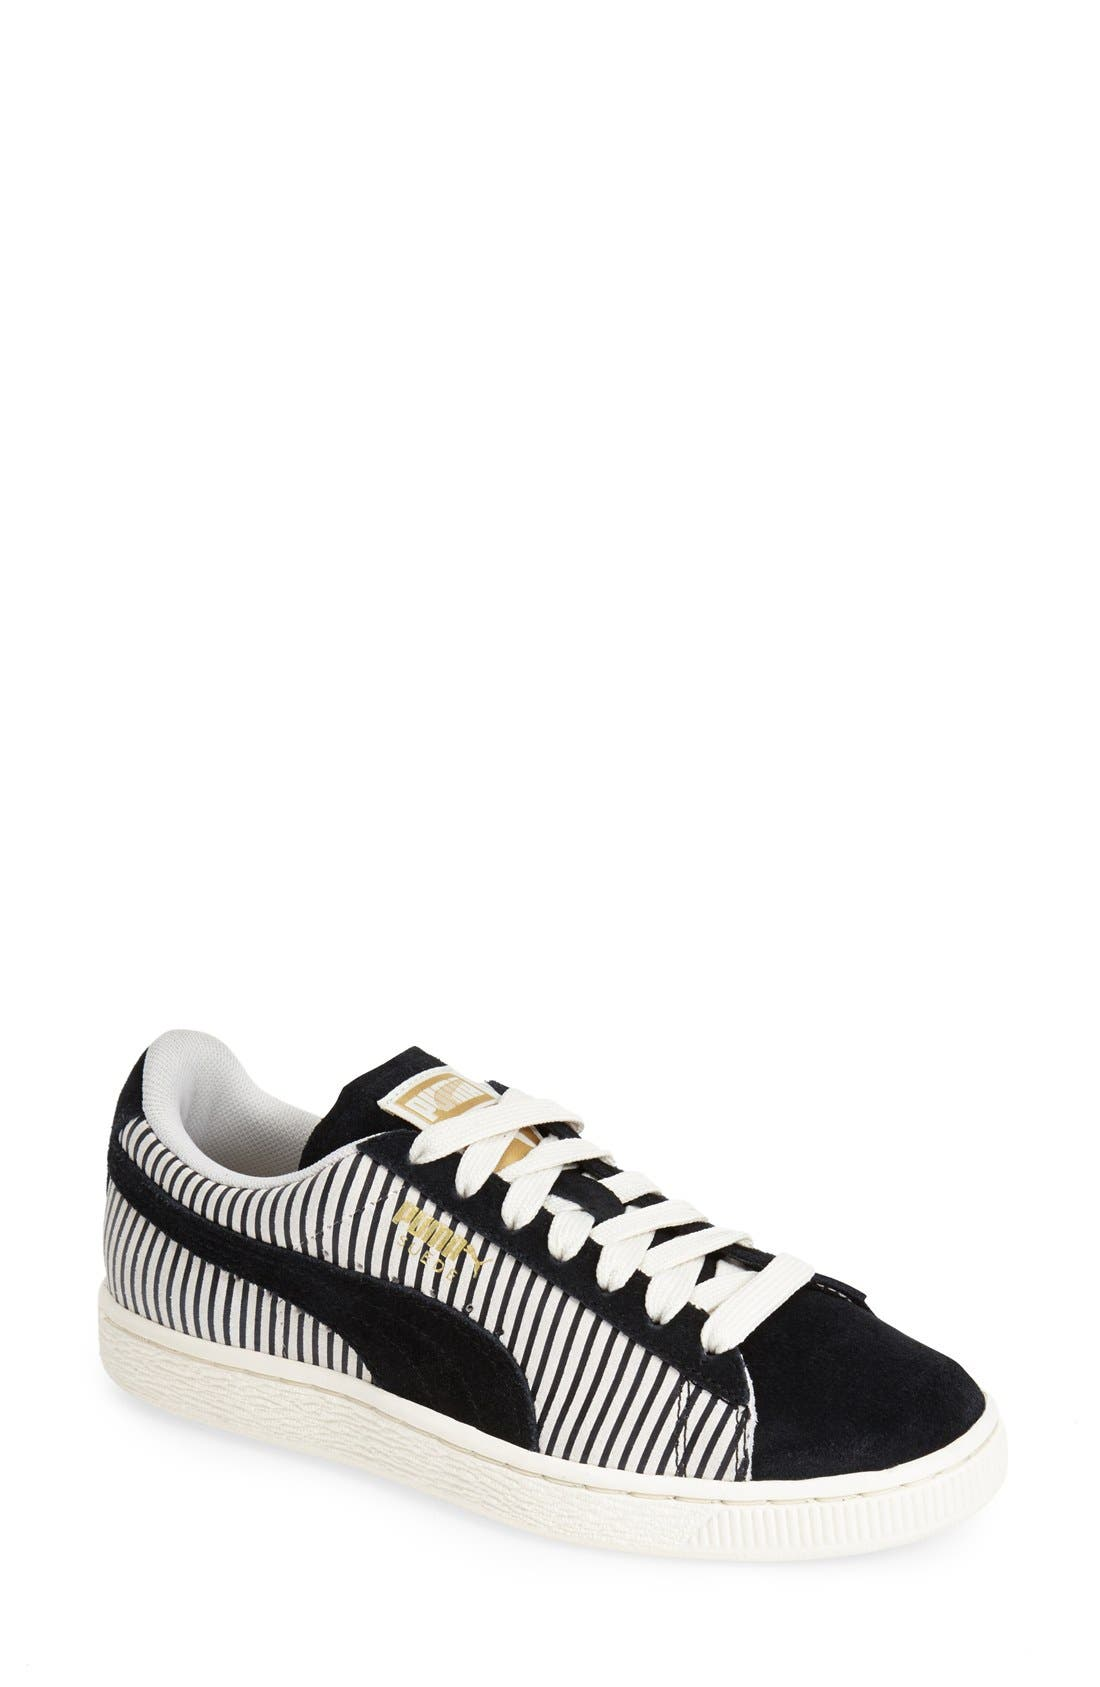 'Suede Classic' Sneaker,                             Main thumbnail 1, color,                             001